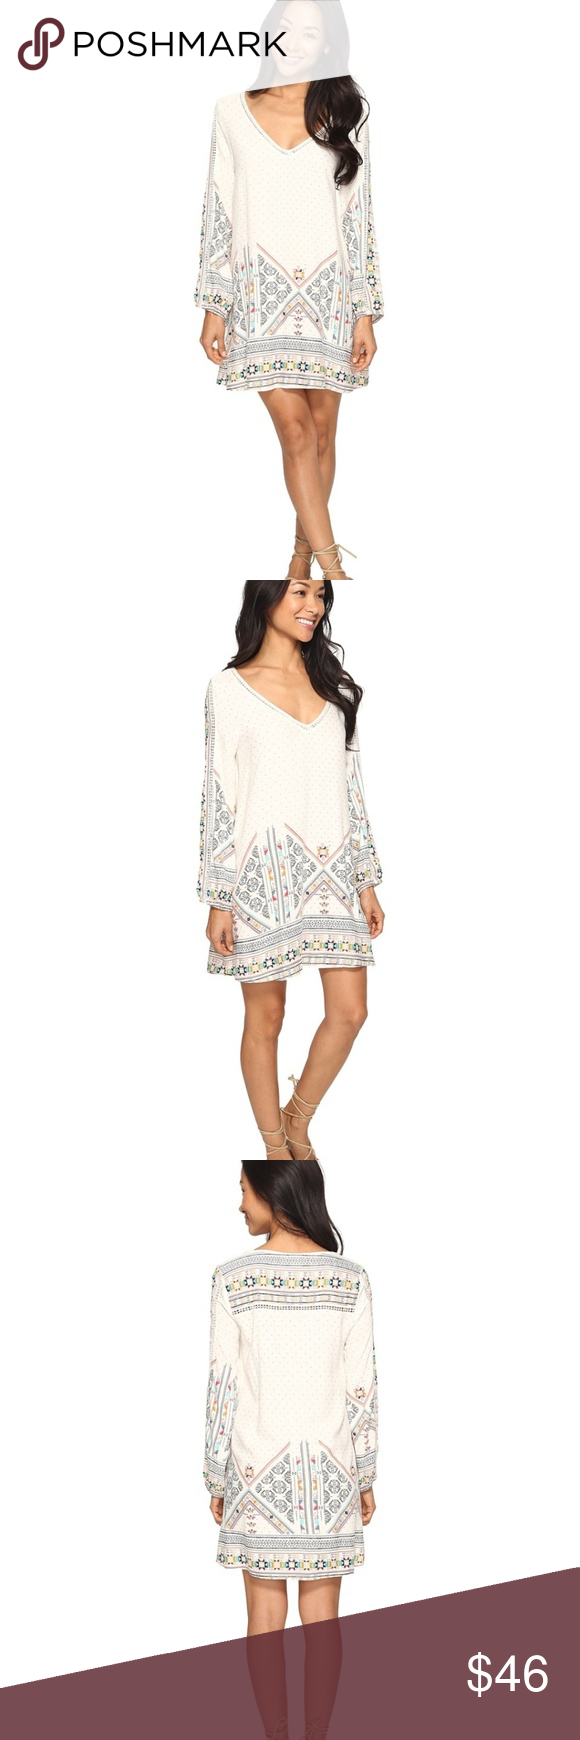 Roxy Dress Roxy Dress (Style-April Morning/Marshmellow Tex Mex Border) Cream colored with black, turquoise, orange, and red colors with geometric shapes. Lightweight dress perfect for summer as a swimsuit cover up or just as a sundress. New Roxy Dresses